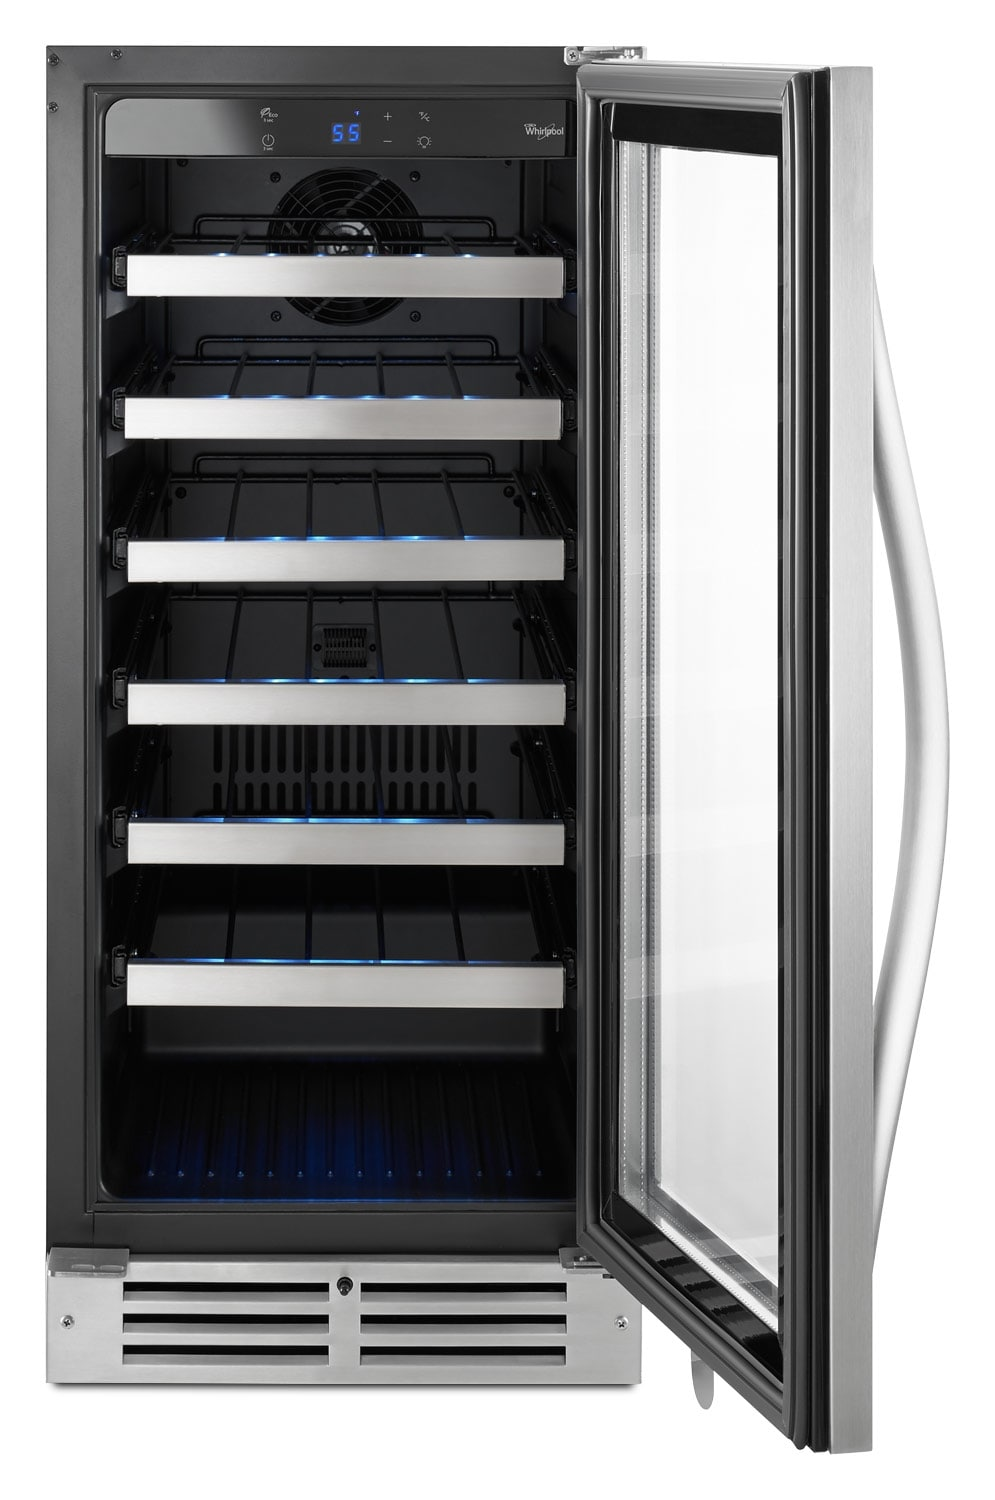 whirlpool stainless steel wine cooler  wuwxds  leon's - whirlpool stainless steel wine cooler  wuwxds